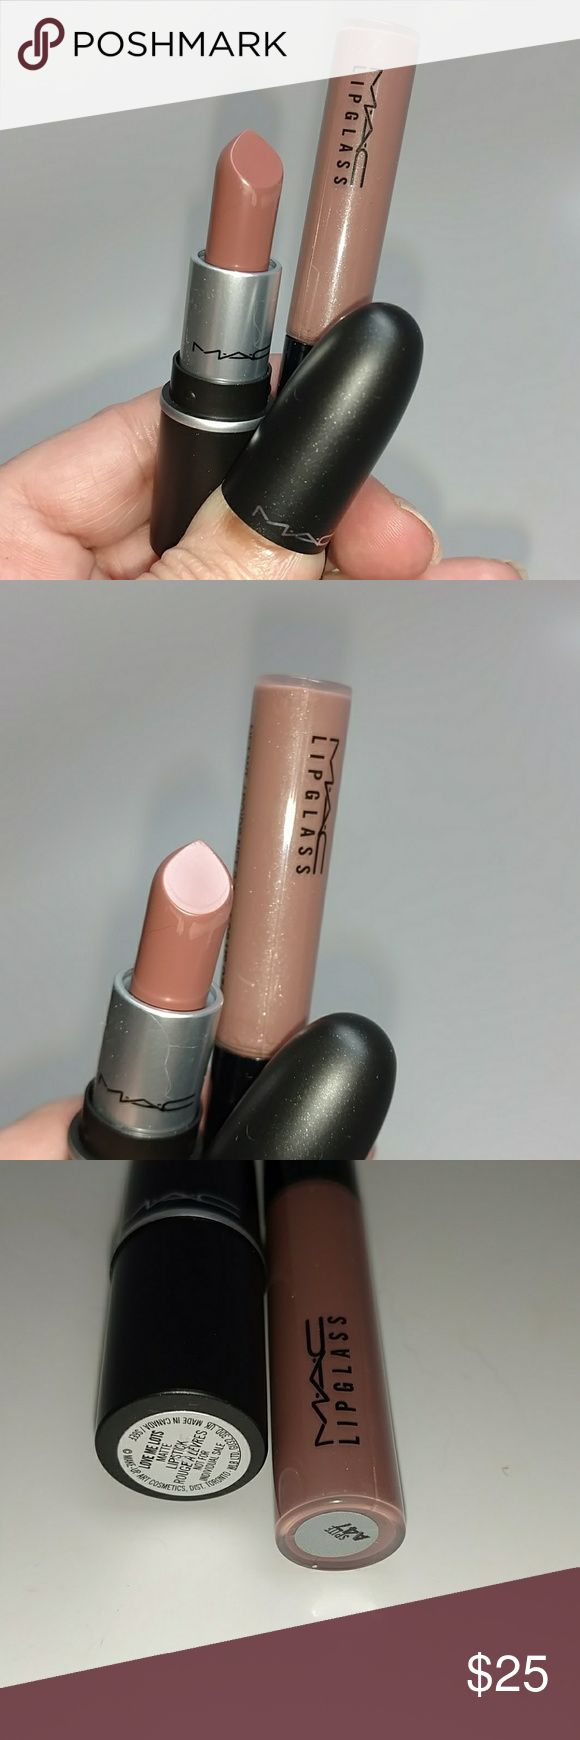 MAC ~ Love Me Lots Authentic MAC minis Lipstick color Love Me Lots and lipglass color Spite.. beautiful duo for a natural sexy lip. New never tested or used unboxed. Fast shipping. MAC Cosmetics Makeup Lipstick